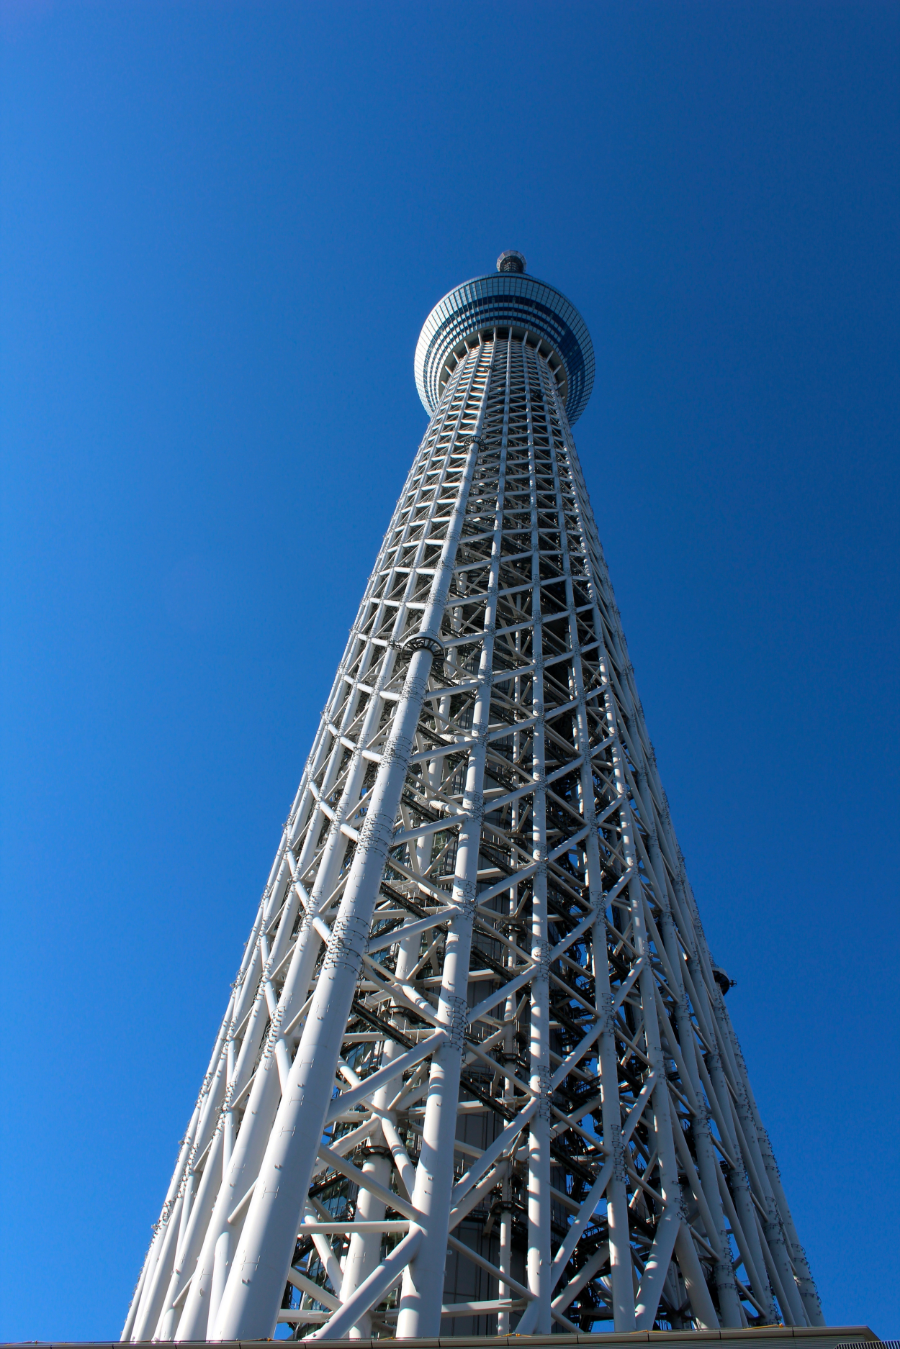 At 2,080 feet, the Tokyo Skytree is the tallest tower in the world. It is twice the size of the Eiffel Tower.